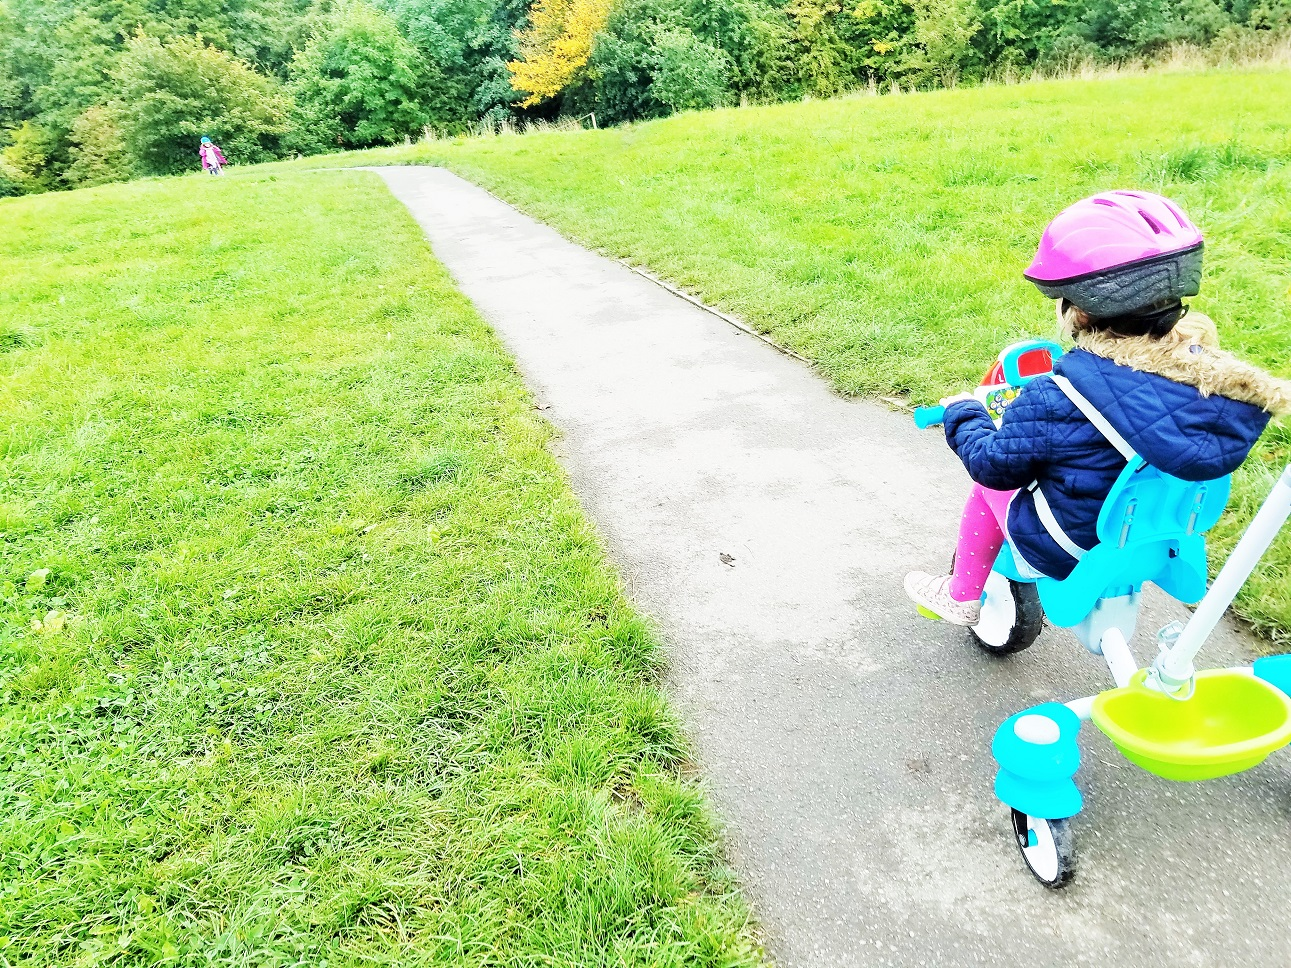 VTech trike on a long path